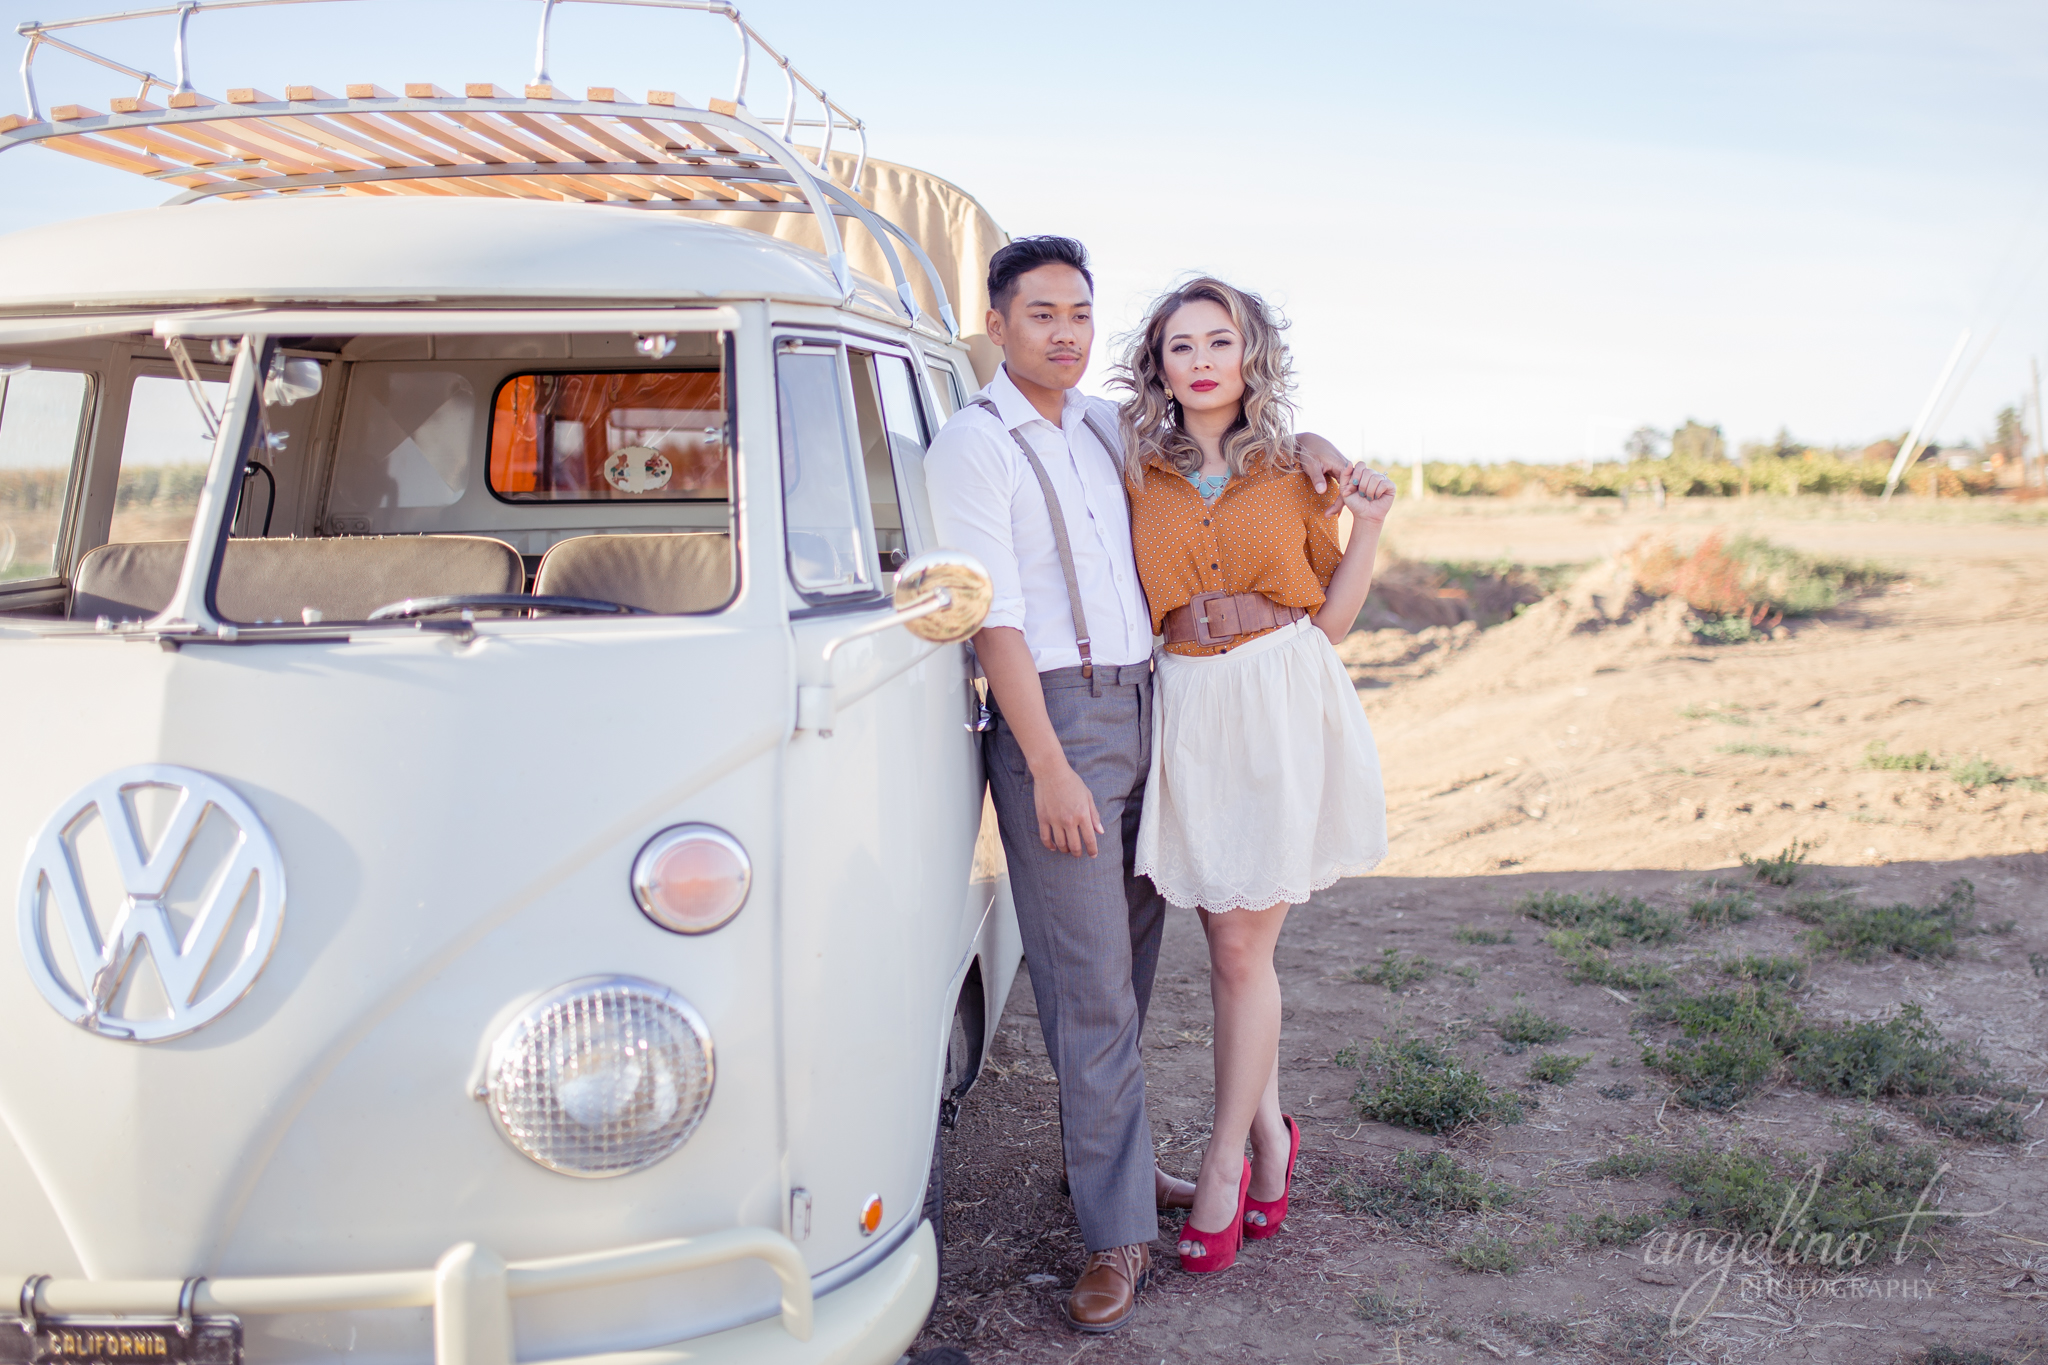 Volkswagen-Bus-Engagement-Photography-Sacramento-01.JPG